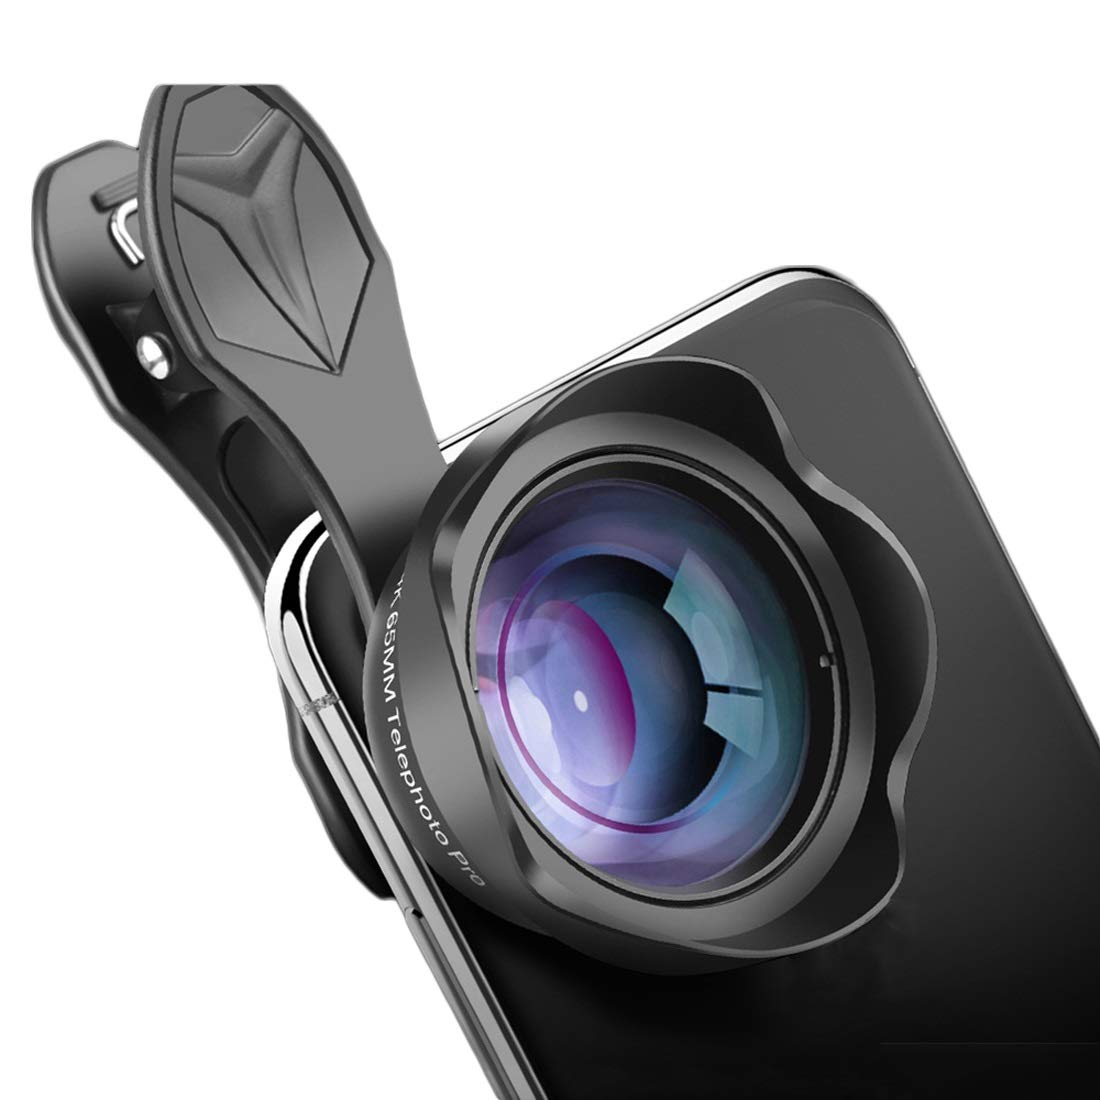 Kathleen Chance Cell Phone Camera Lens 4k 65mm Telephoto Lens for Detail Shooting Compatible iPhone x 8 7 Plus, Samsung Smartphones